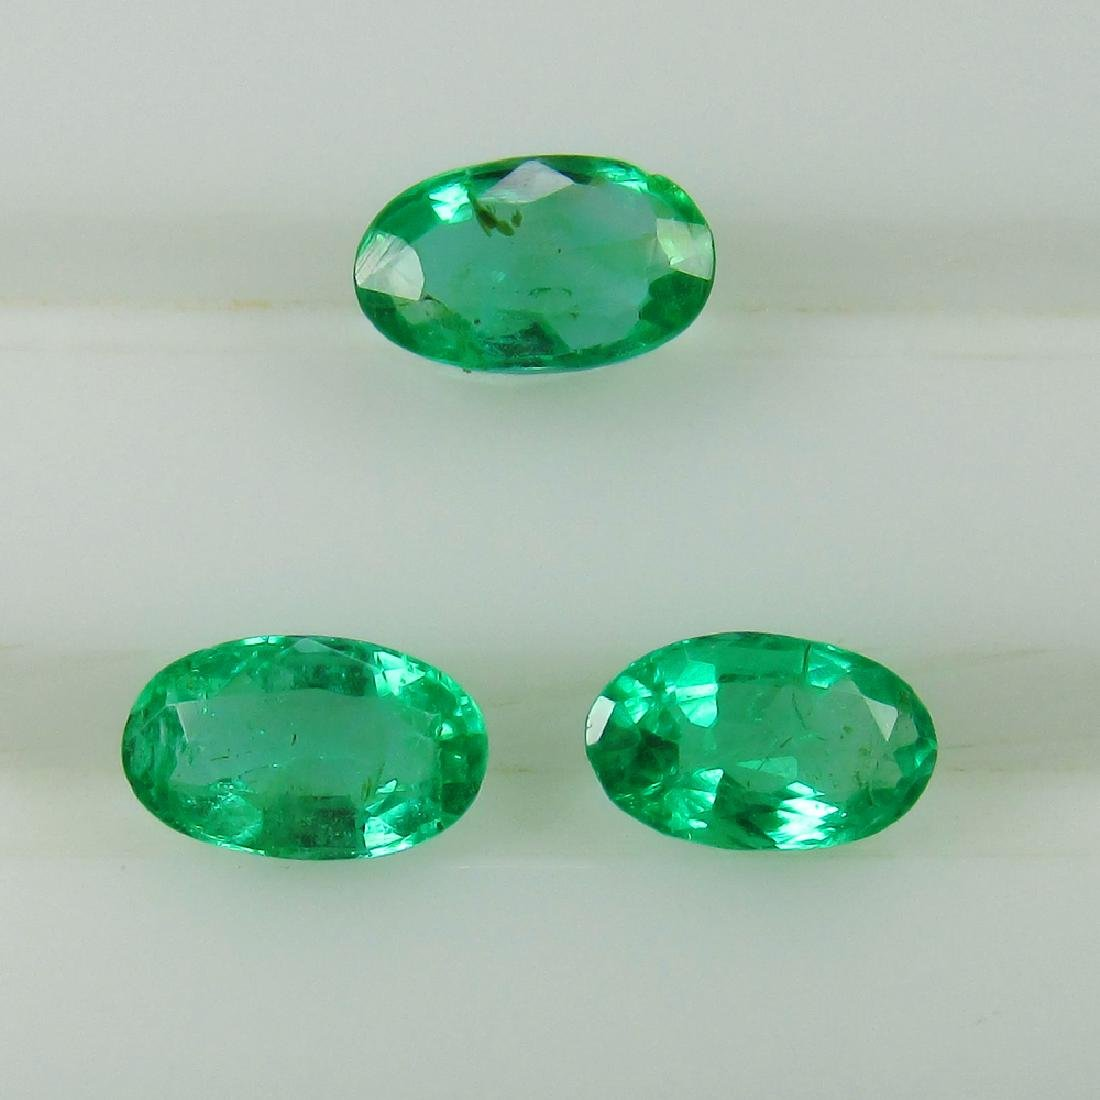 0.66 Ct Genuine Zambian Emerald Oval Cut